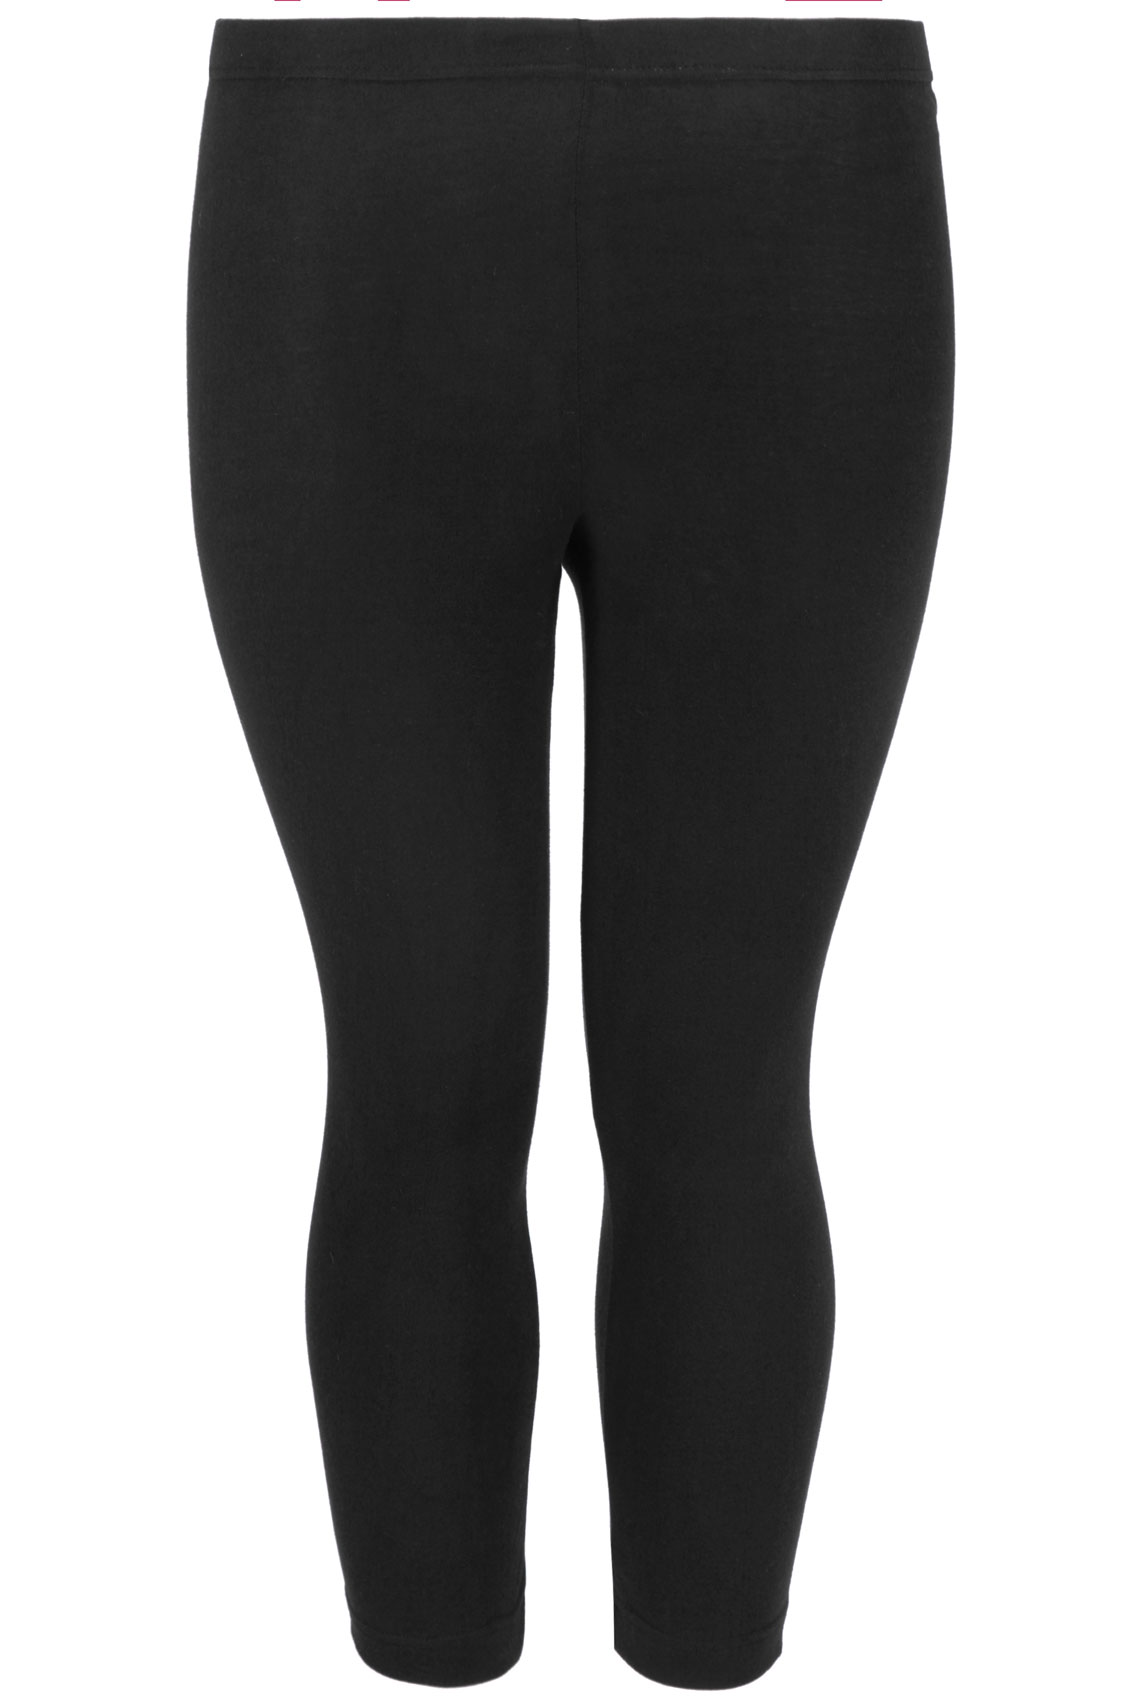 leggings viskose elasthan